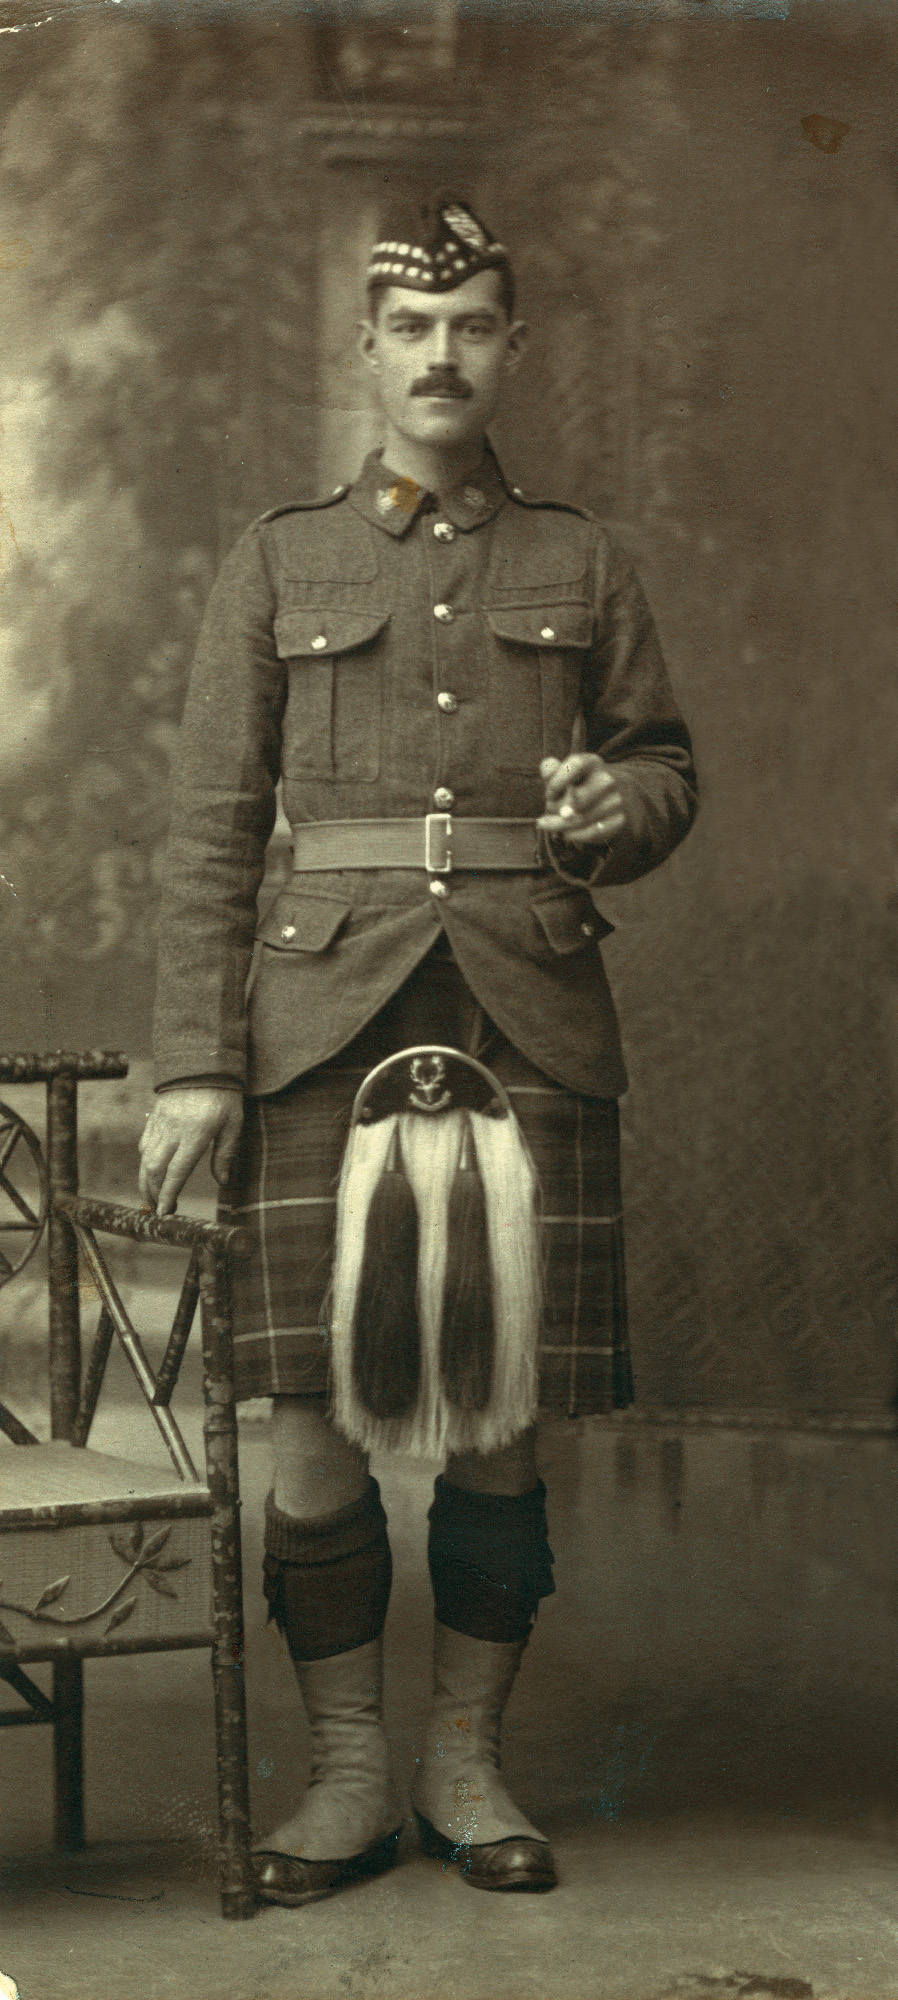 "Malcolm McLeod was born in Stornoway, on the Isle of Lewis in Scotland, in 1888. He served for six years with the 3rd Battalion, Seaforth Highlanders (Ross-shire Buffs, The Duke of Albany's), before emigrating to Canada and joining the 72nd Seaforth Highlanders of Canada during the First World War. An original who served in France with the battalion from August of 1916, McLeod was severely wounded at Vimy Ridge. Shot in the neck, back, buttock and foot, he was slipping in and out of consciousness and presumed dead. When he heard troops clearing the battlefield of dead say, ""I guess we have room for one more"" he summoned the strength to groan. Malcolm would spend the next year in and out of hospitals, undergoing multiple operations to remove bullet fragments and shrapnel, before coming home to Canada and being discharged in May of 1918. For his actions at Vimy Ridge, Malcolm McLeod was cited for conspicuous gallantry."